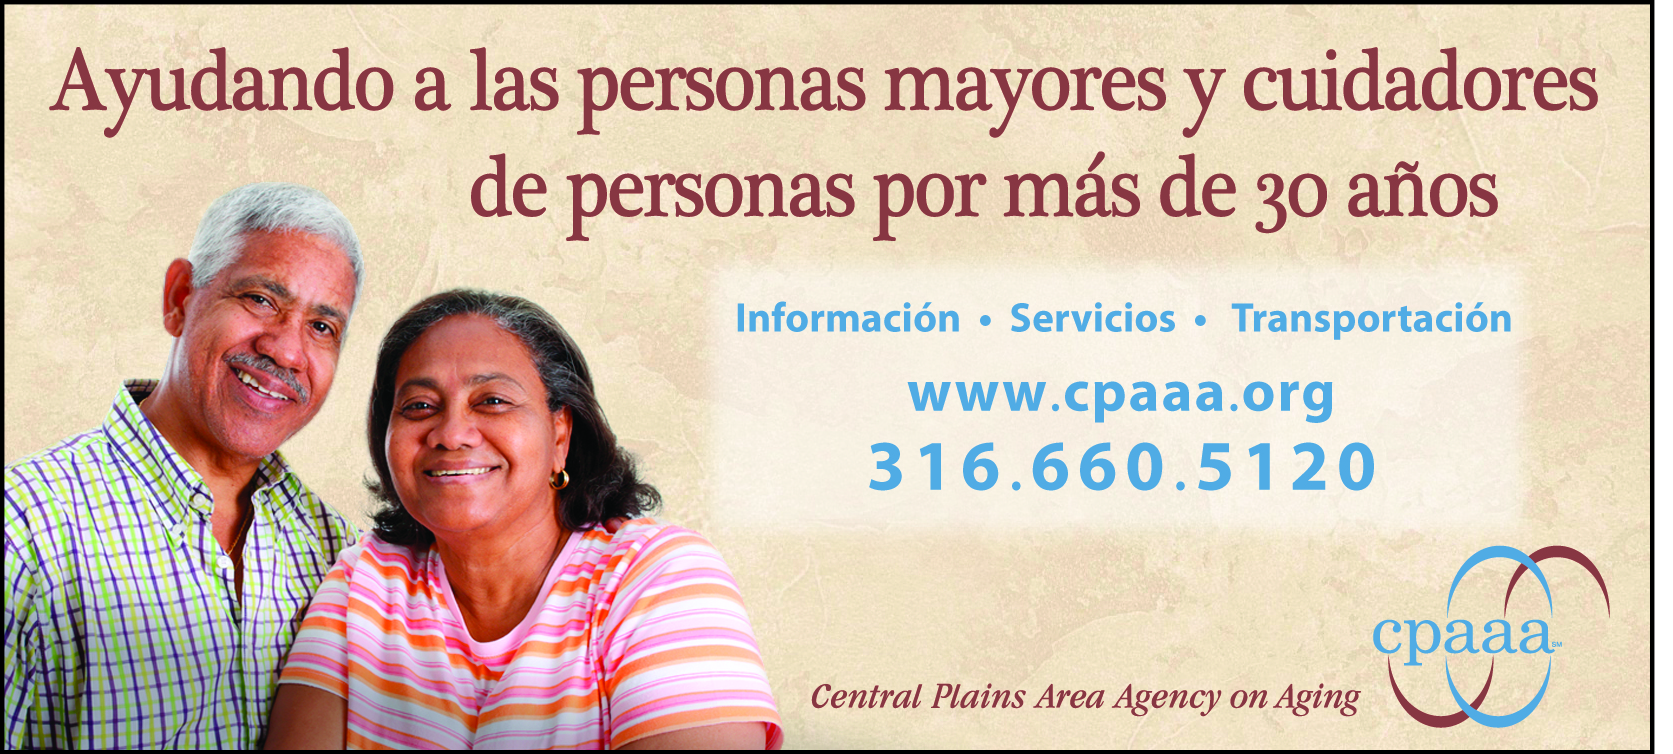 Copy of Spanish ad for CPAAA.jpg